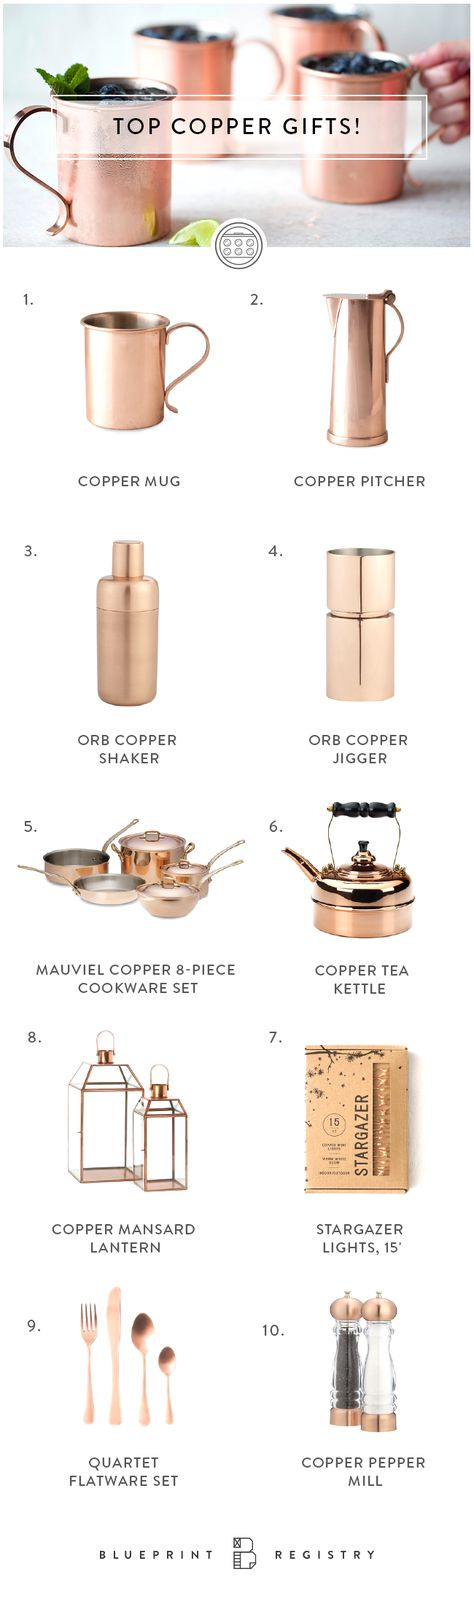 Collecting Copper Kitchens, Room and Copper kitchen - fresh blueprint registry fees